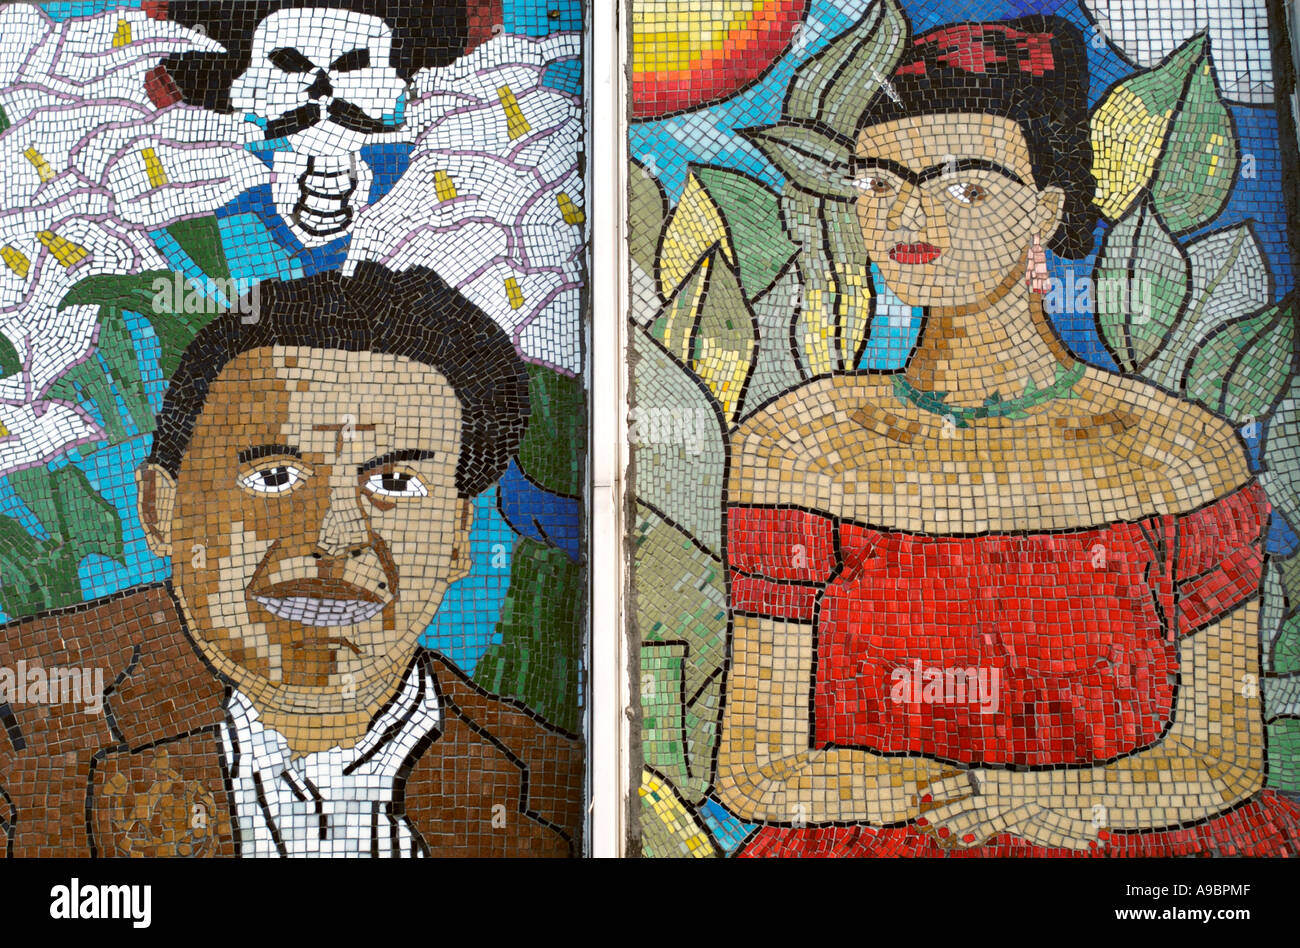 Frida kahlo and diego rivera adorn a mosiac mural in the for Diego rivera mural chicago